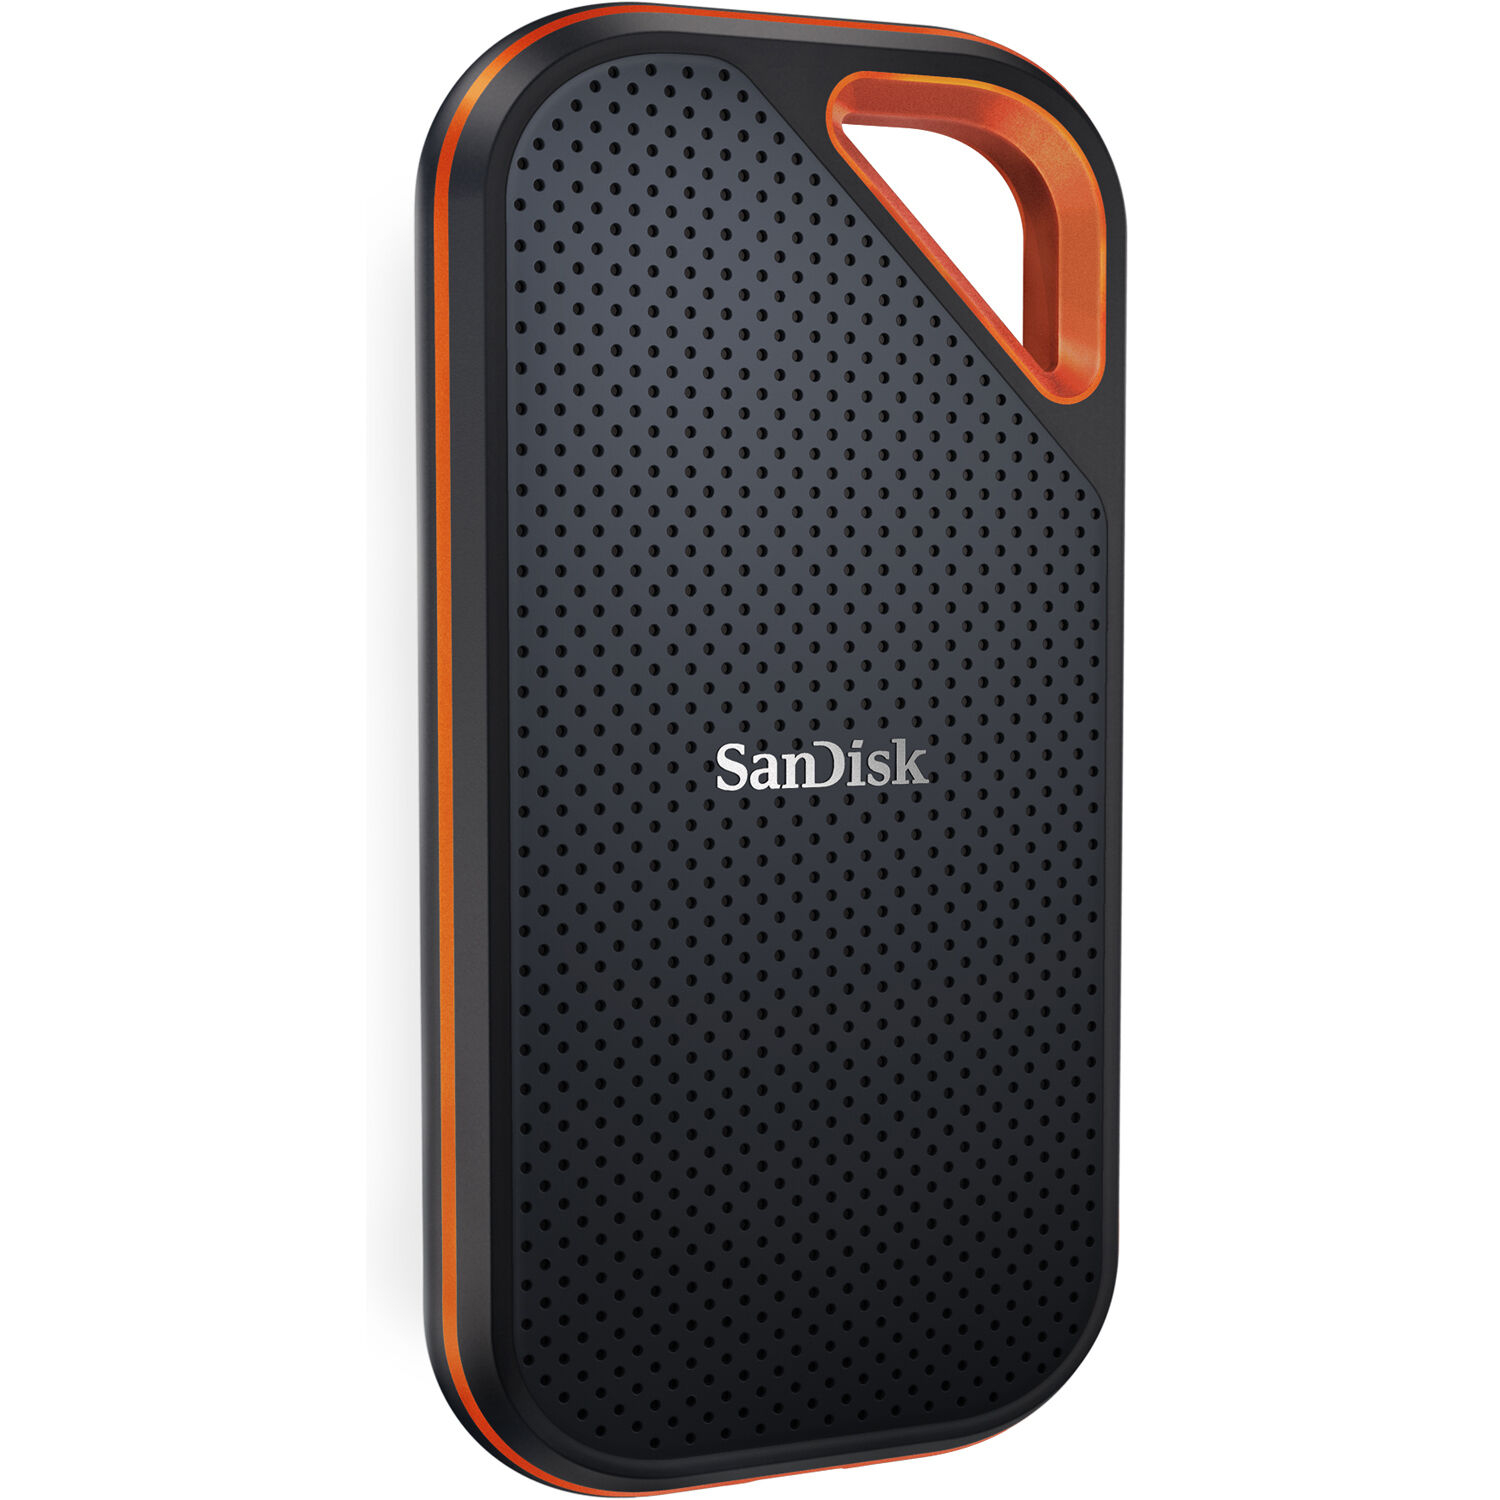 SanDisk Extreme PRO 4TB Portable SSD - Read/Write Speeds up to 2000MB/s, USB 3.2 Gen 2x2